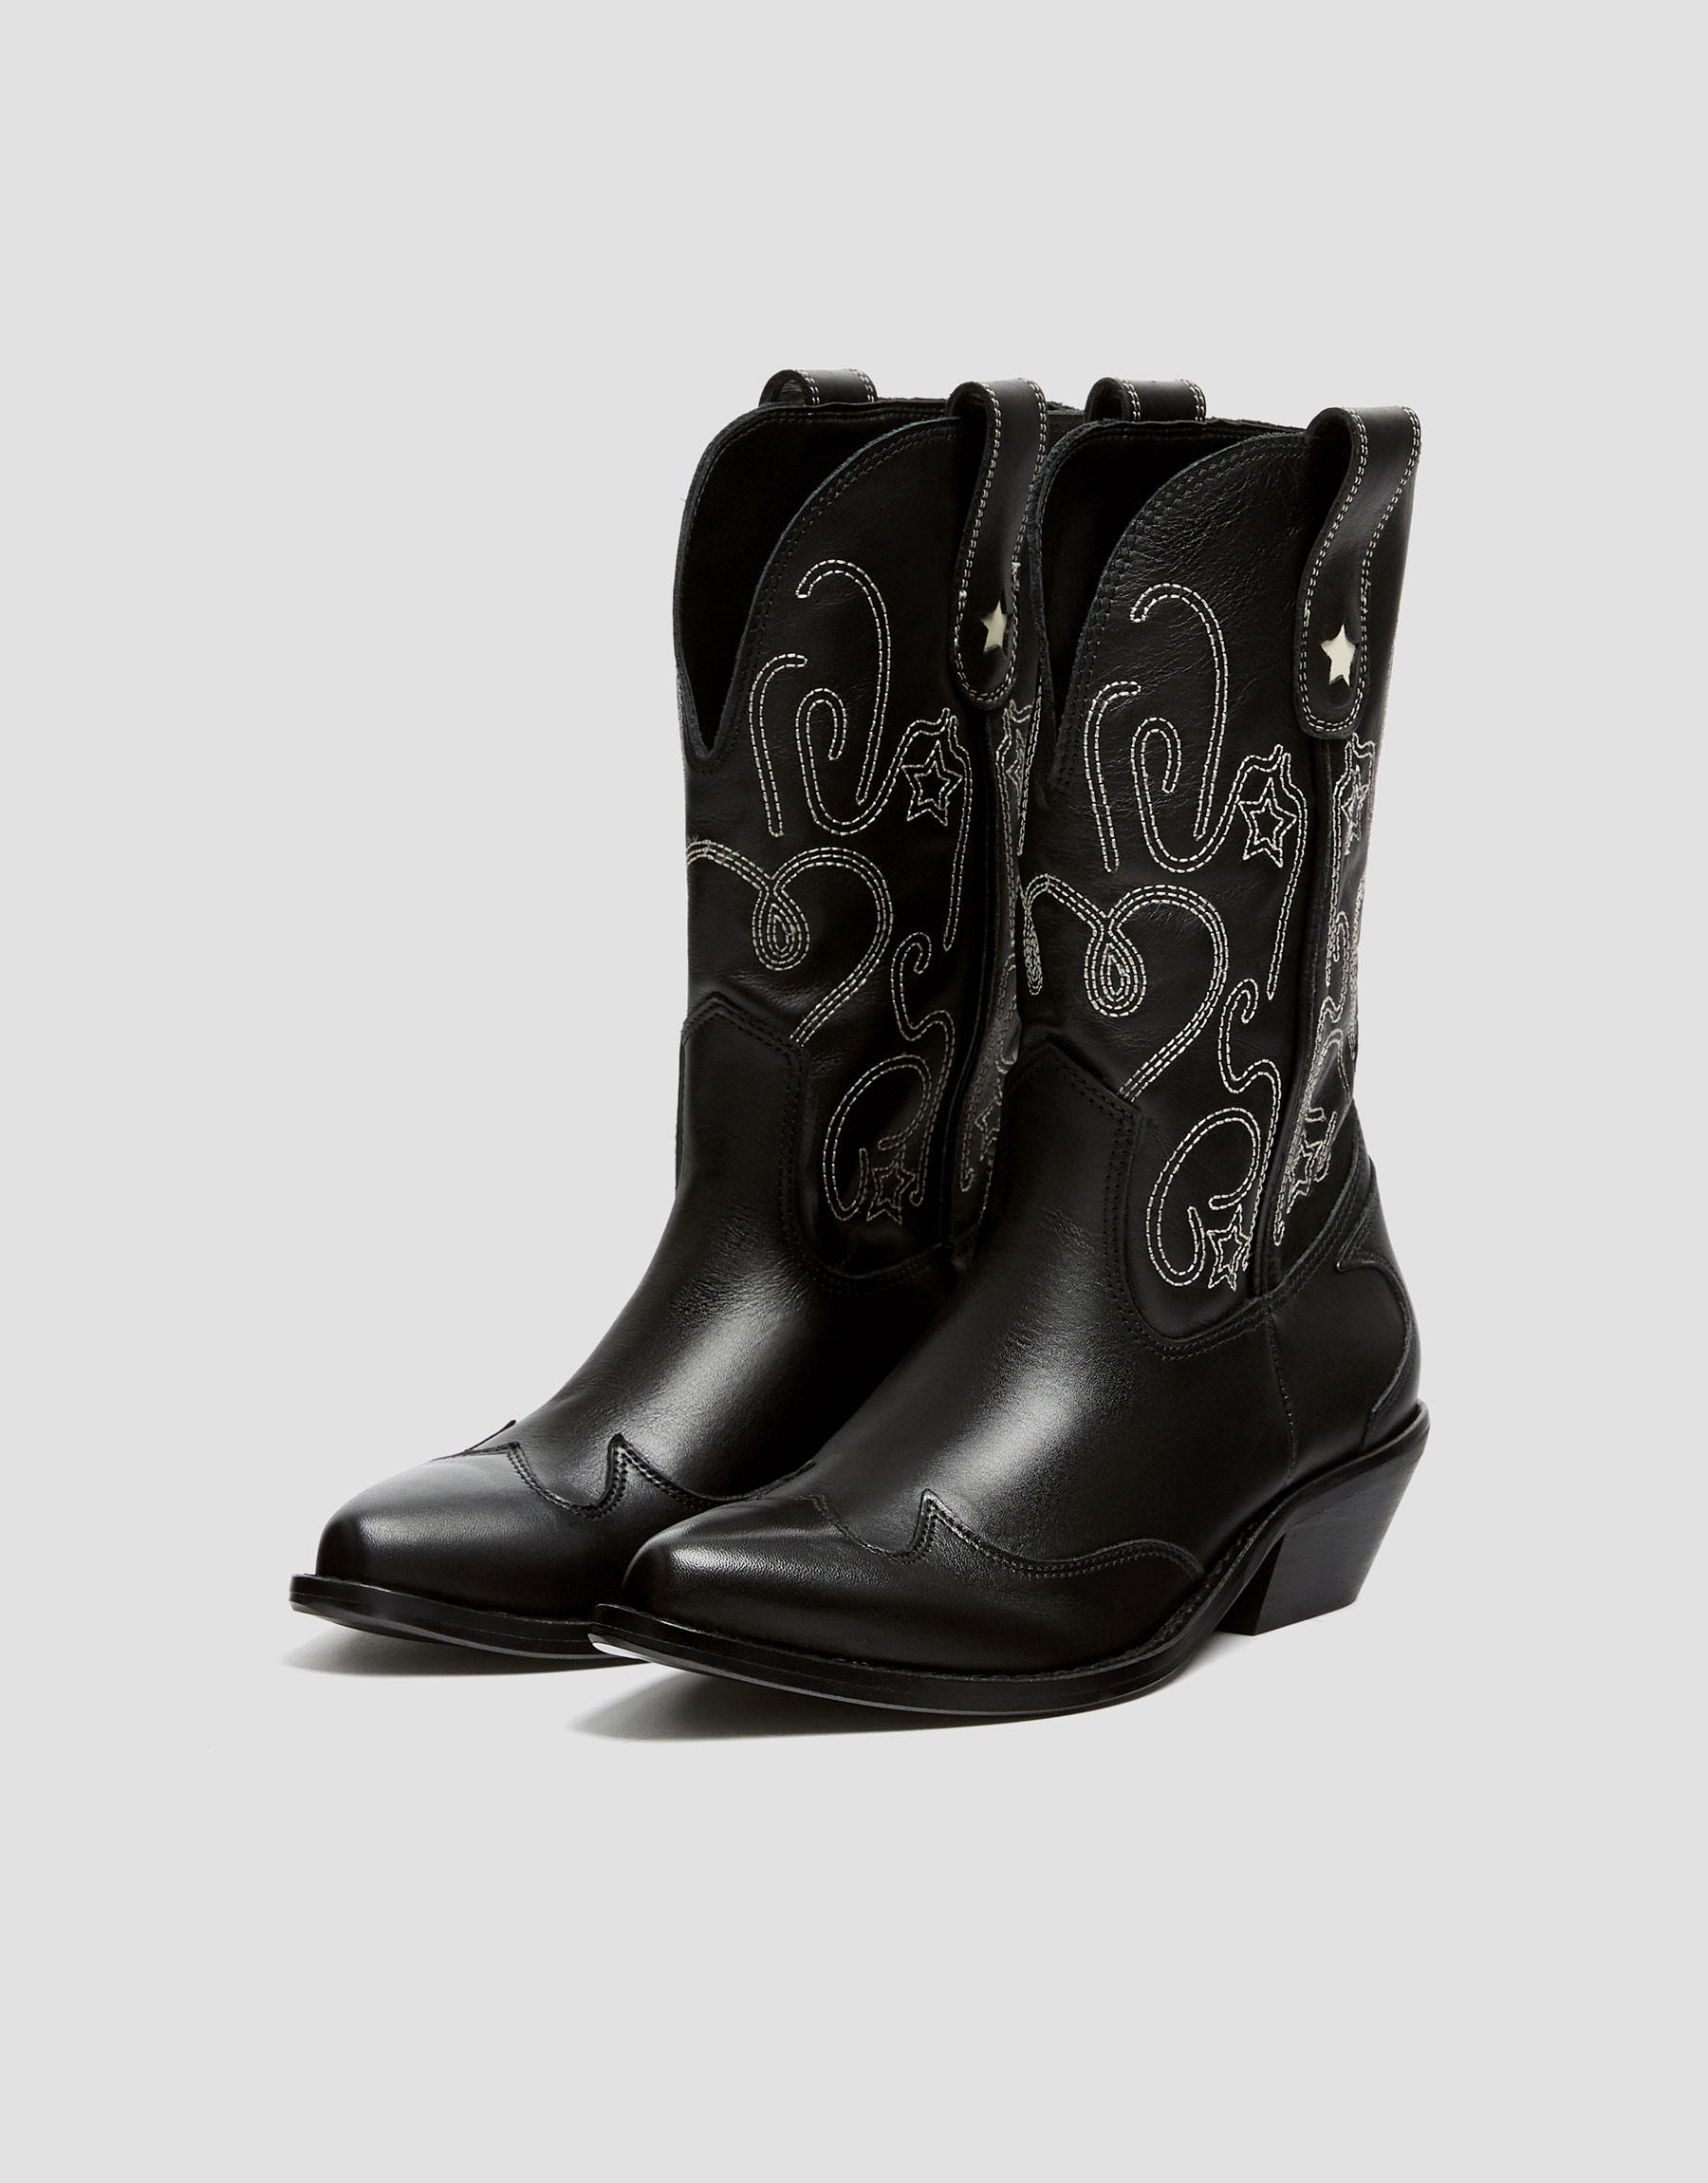 ddeee1b3e8f Embroidered leather cowboy boots